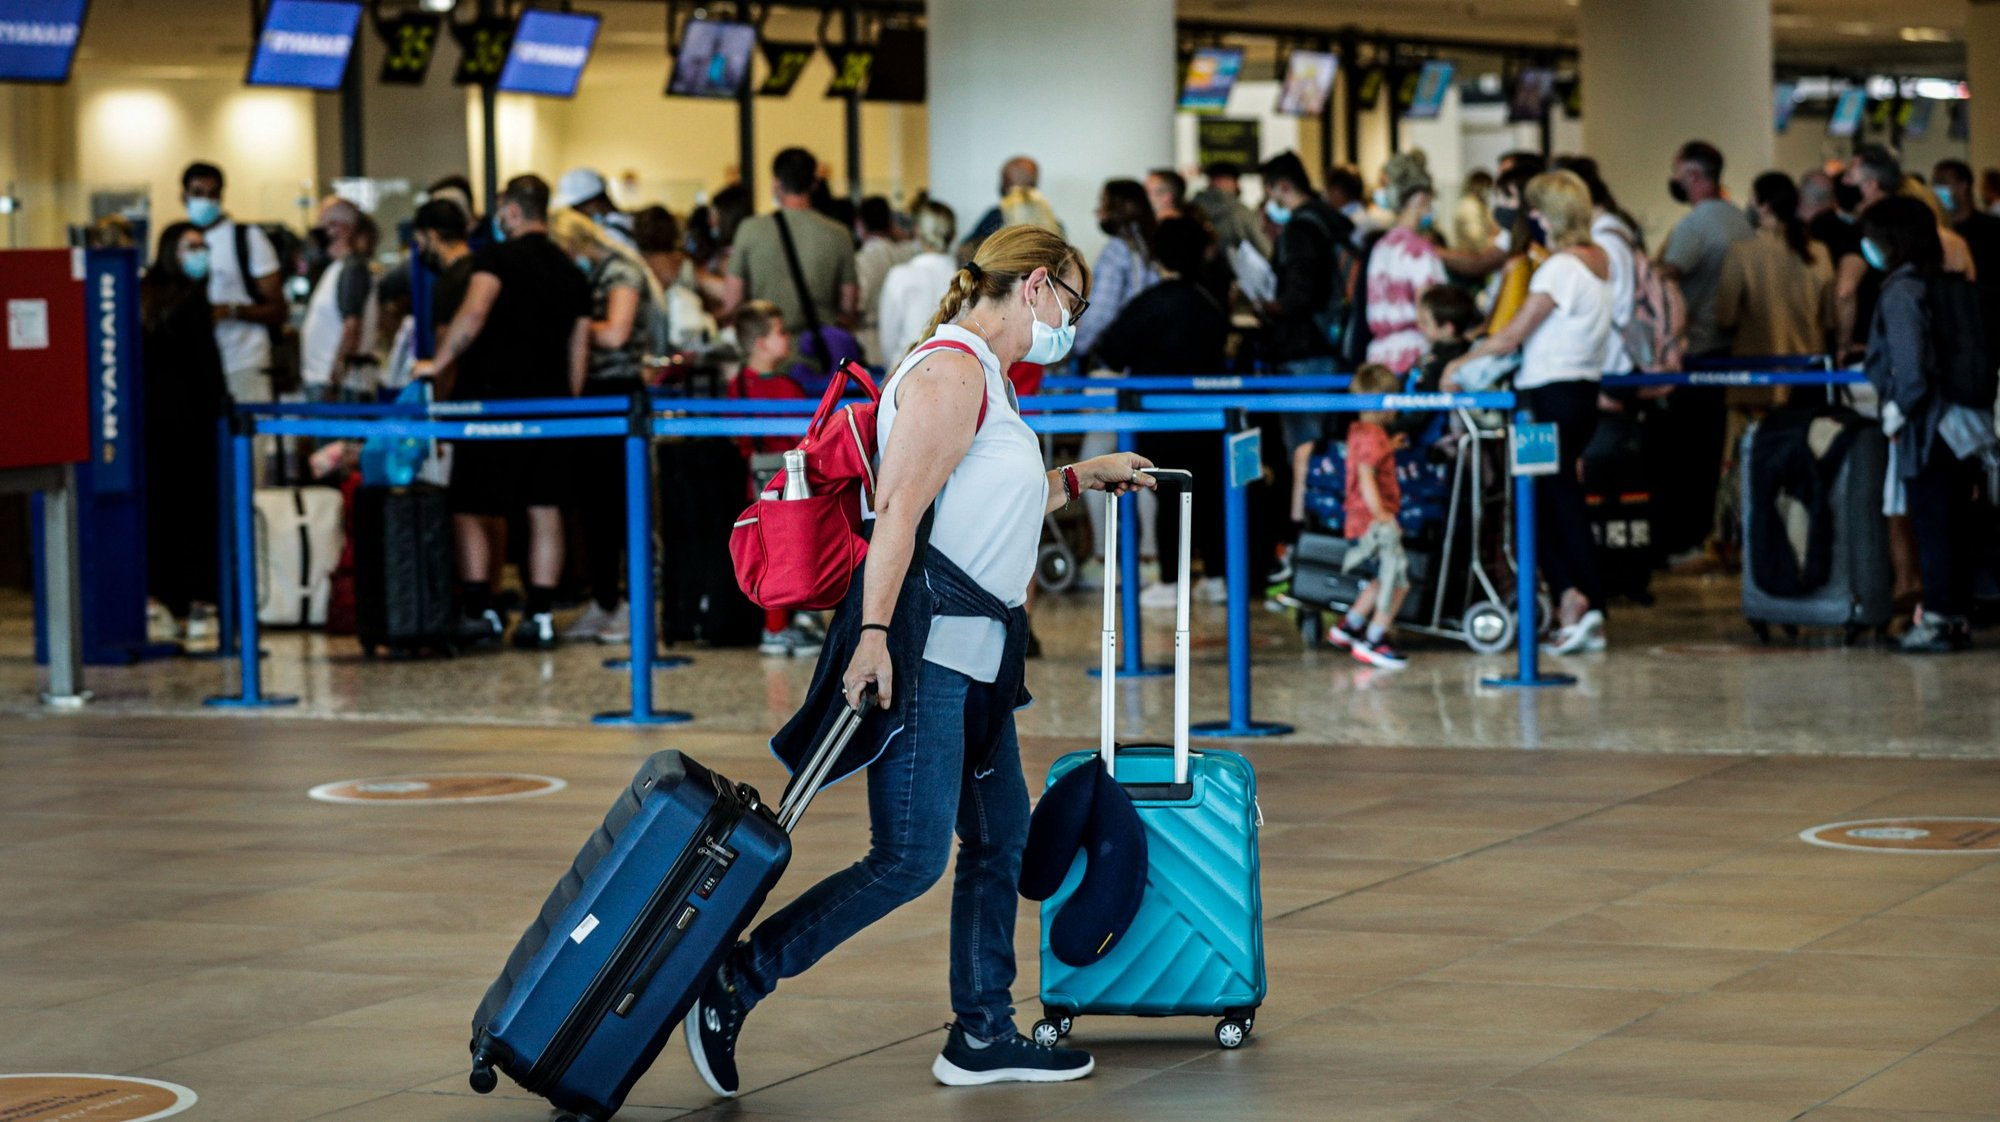 British people gather at Faro Airport as they interrupt their holidays in the Algarve and return home due to the British government's new rules about the covid-19 pandemic, Faro, Portugal, 7 June 2021. LUÍS FORRA/LUSA